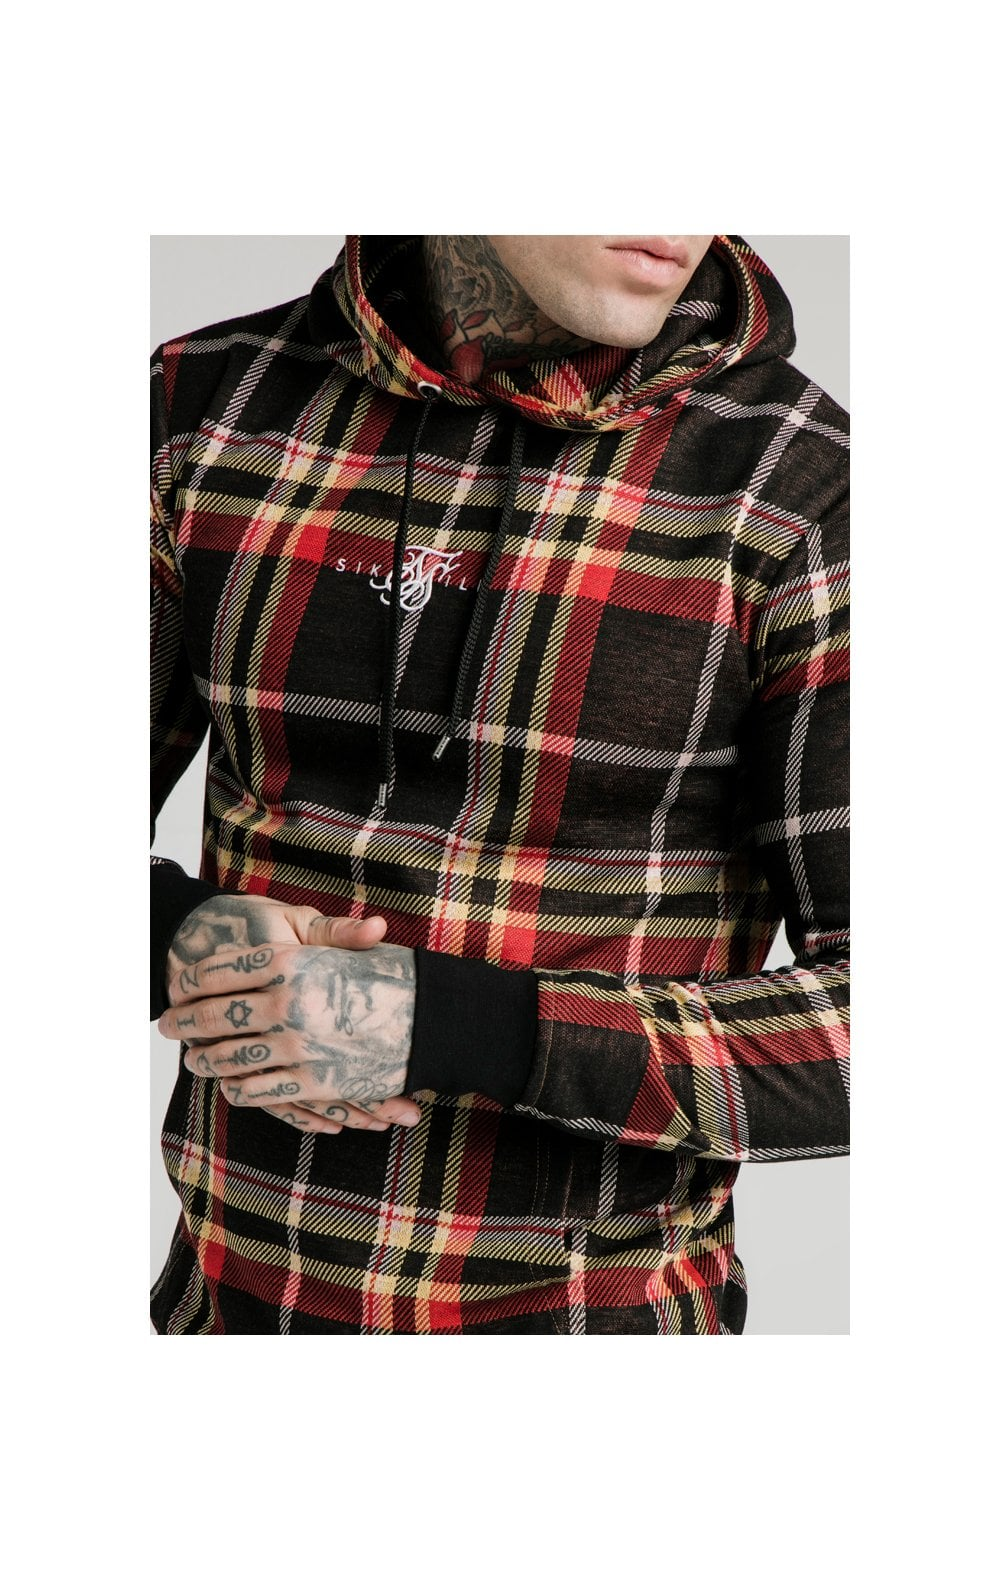 Load image into Gallery viewer, SikSilk Smart Overhead Hoodie Multi Grain Check